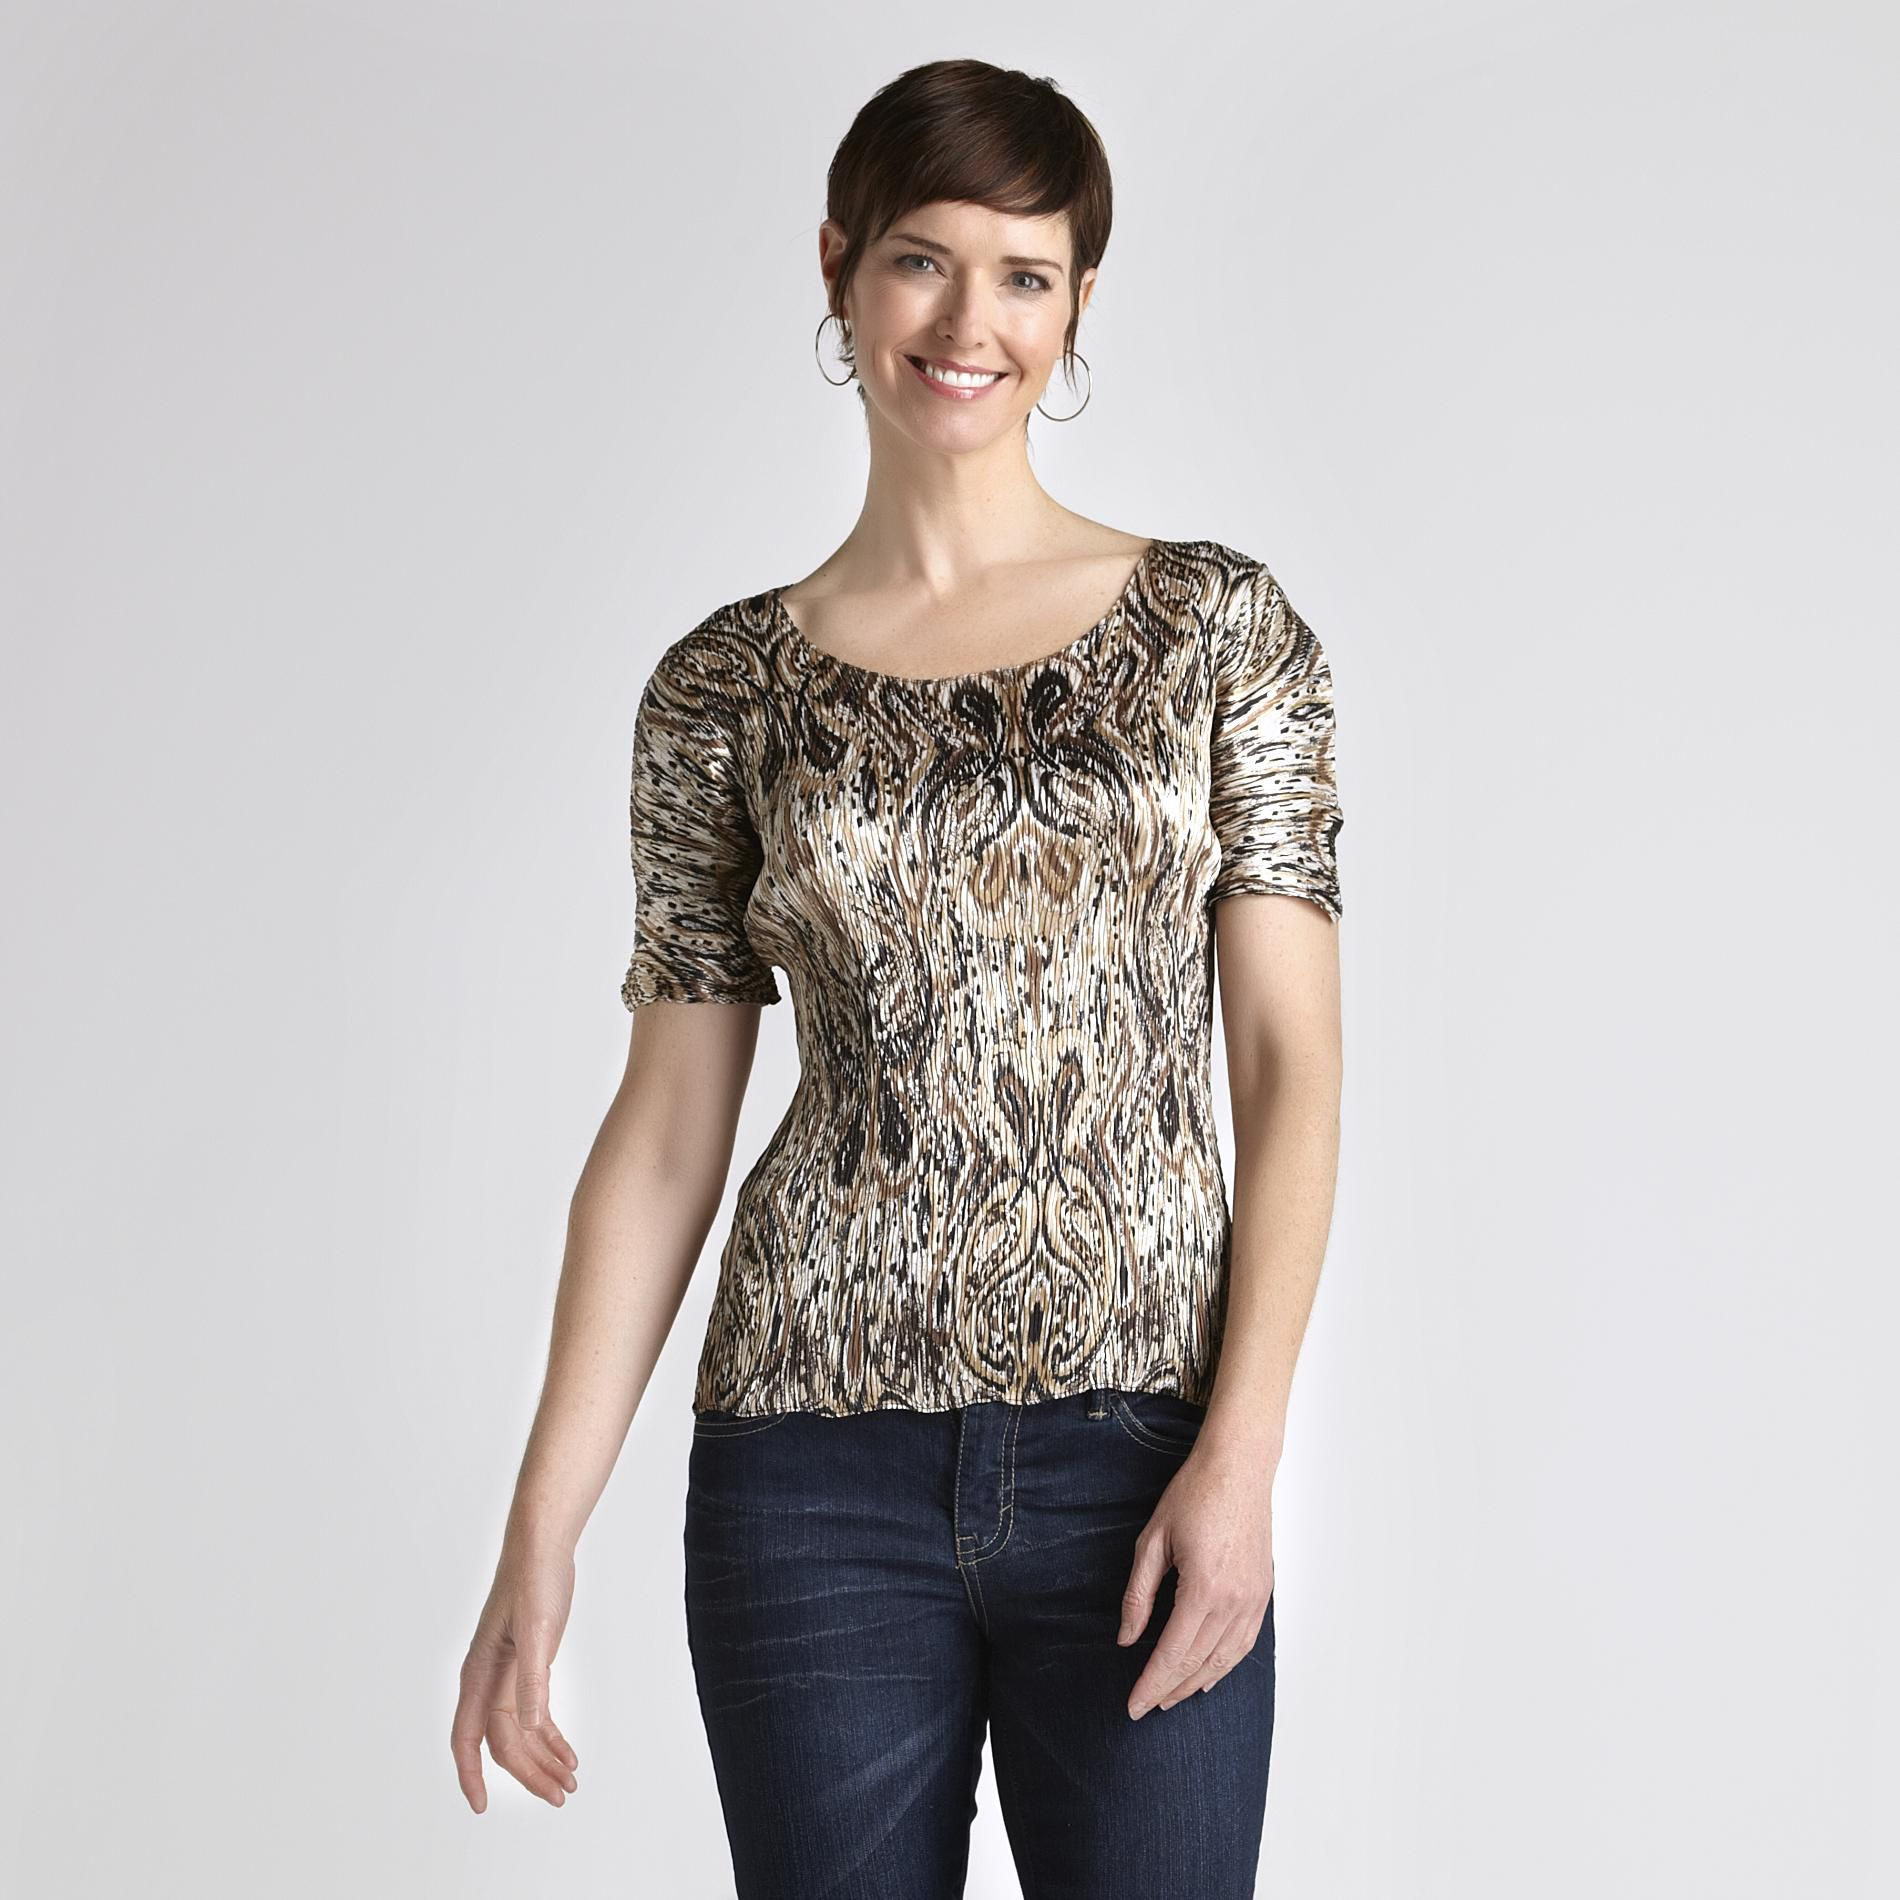 Jaclyn Smith Women's Print Pucker Top at Kmart.com